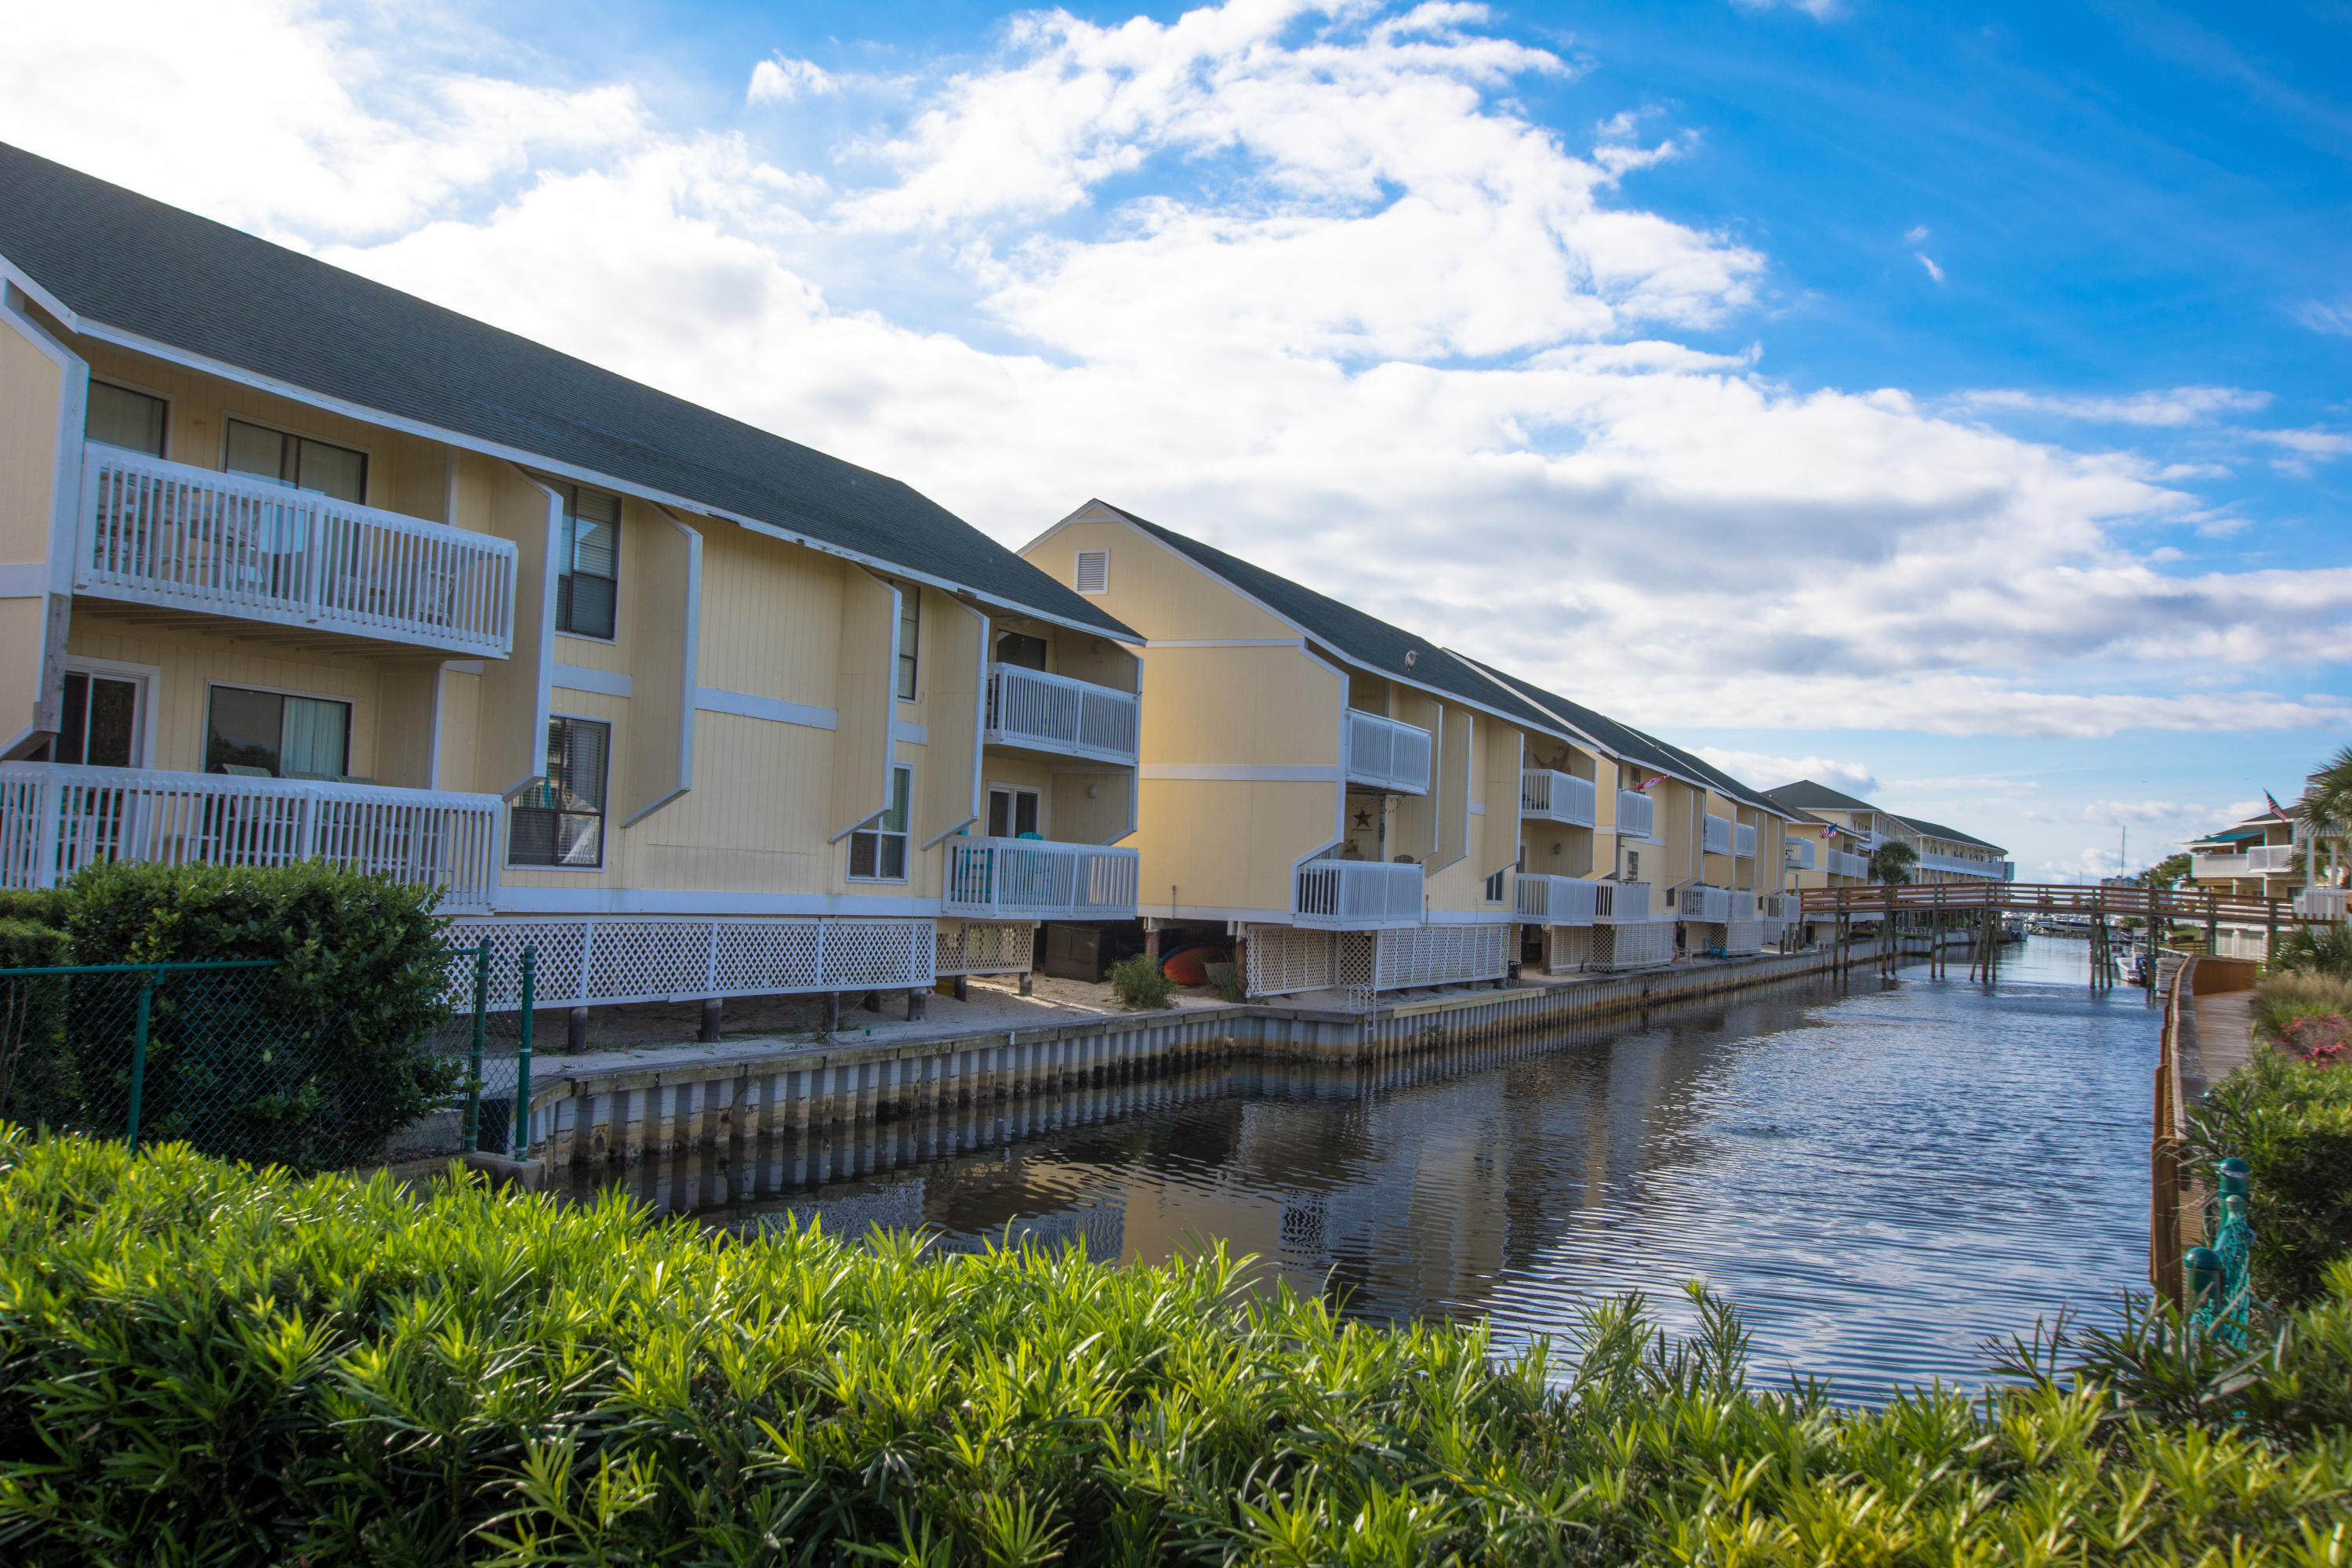 This lovely canal front condo has everything you need to start enjoying the fabulous beach lifestyle. Great view of the canal from your private balcony and just a short stroll to the beach. Many great amenities including marina, 5 pools, 3 hot tubs, 6 tennis courts, a Par 3 executive 9 hole golf course and  2 onsite restaurants. This popular resort is located near many great attractions. Plenty of room for the whole family, you can also do vacation rentals to capture high dollar summer rental income. Buyer to verify all information.